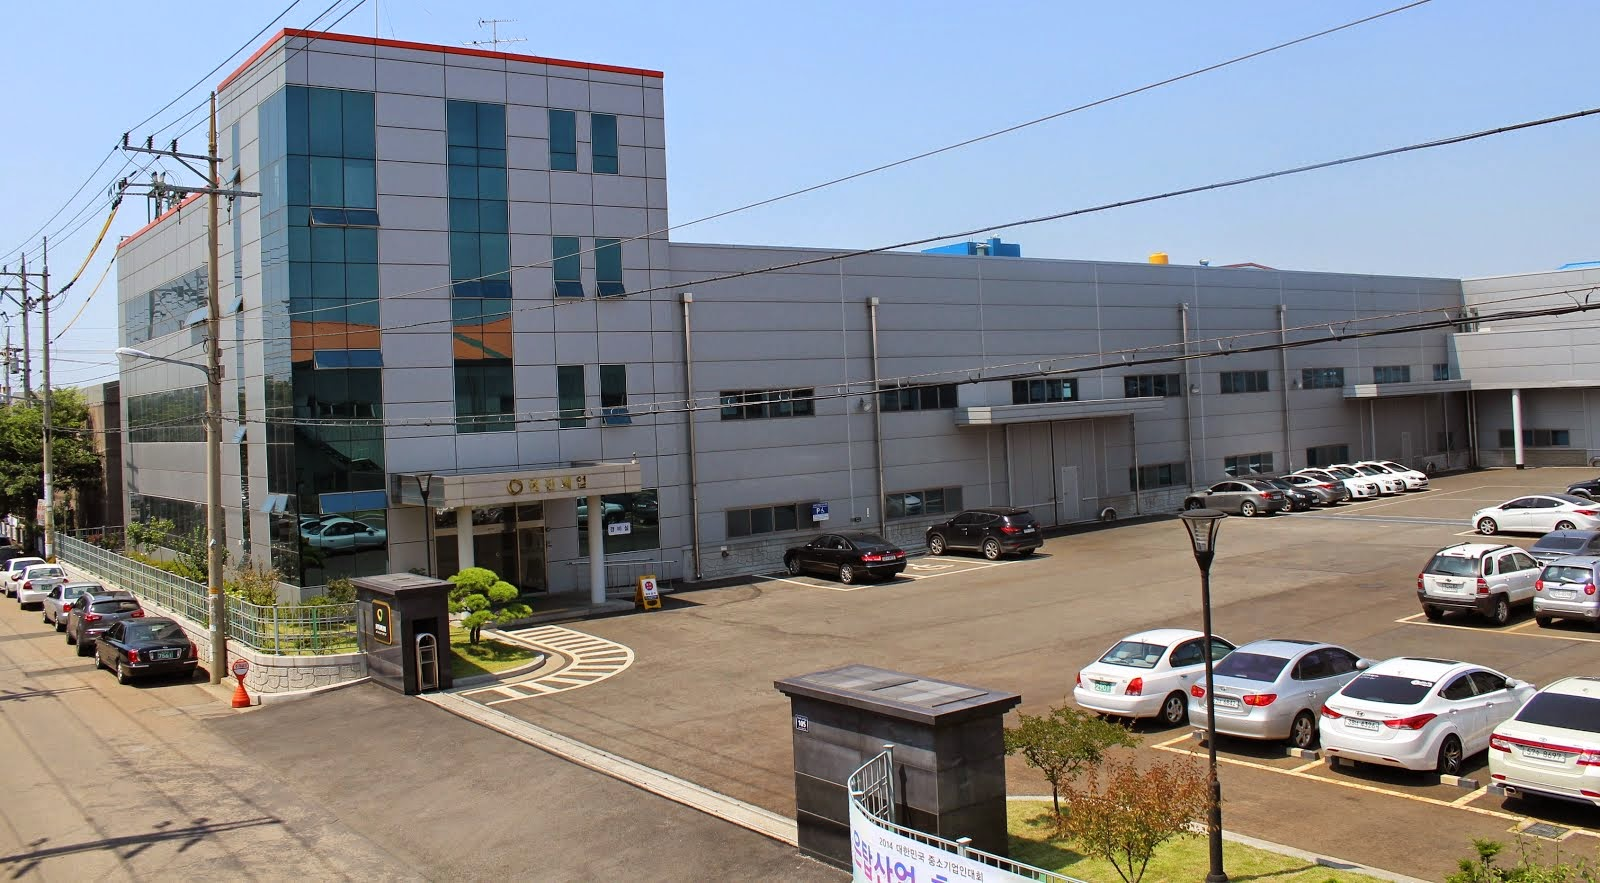 Factory's Outside View